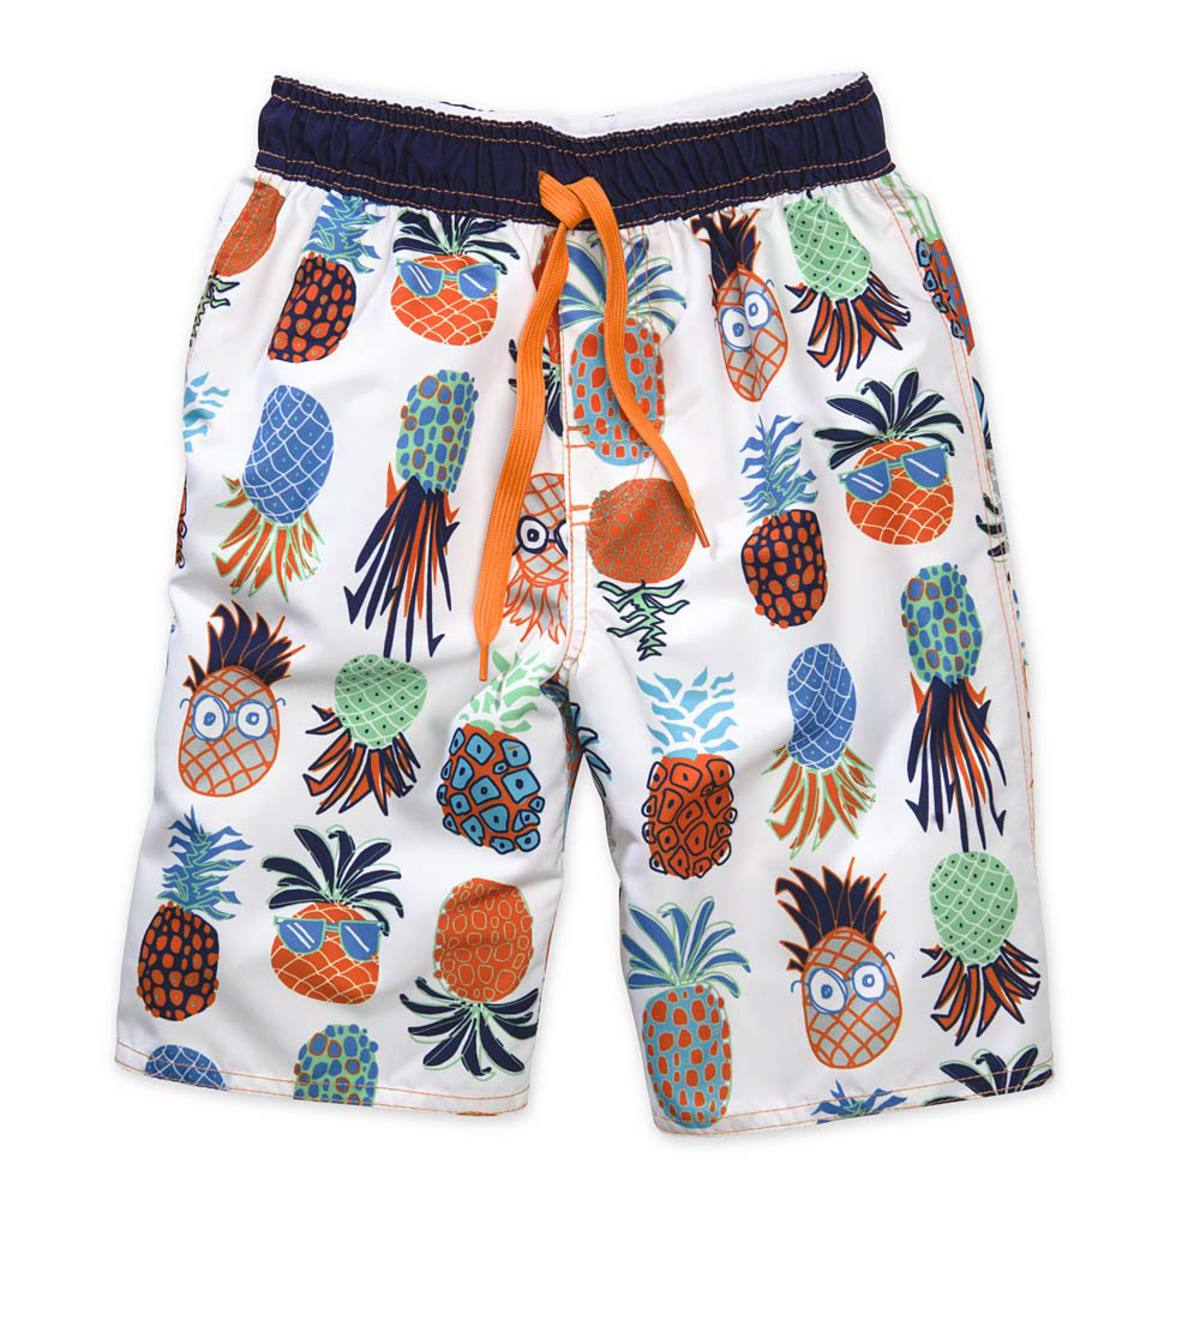 Pineapple Swim Trunks - Multi - /12